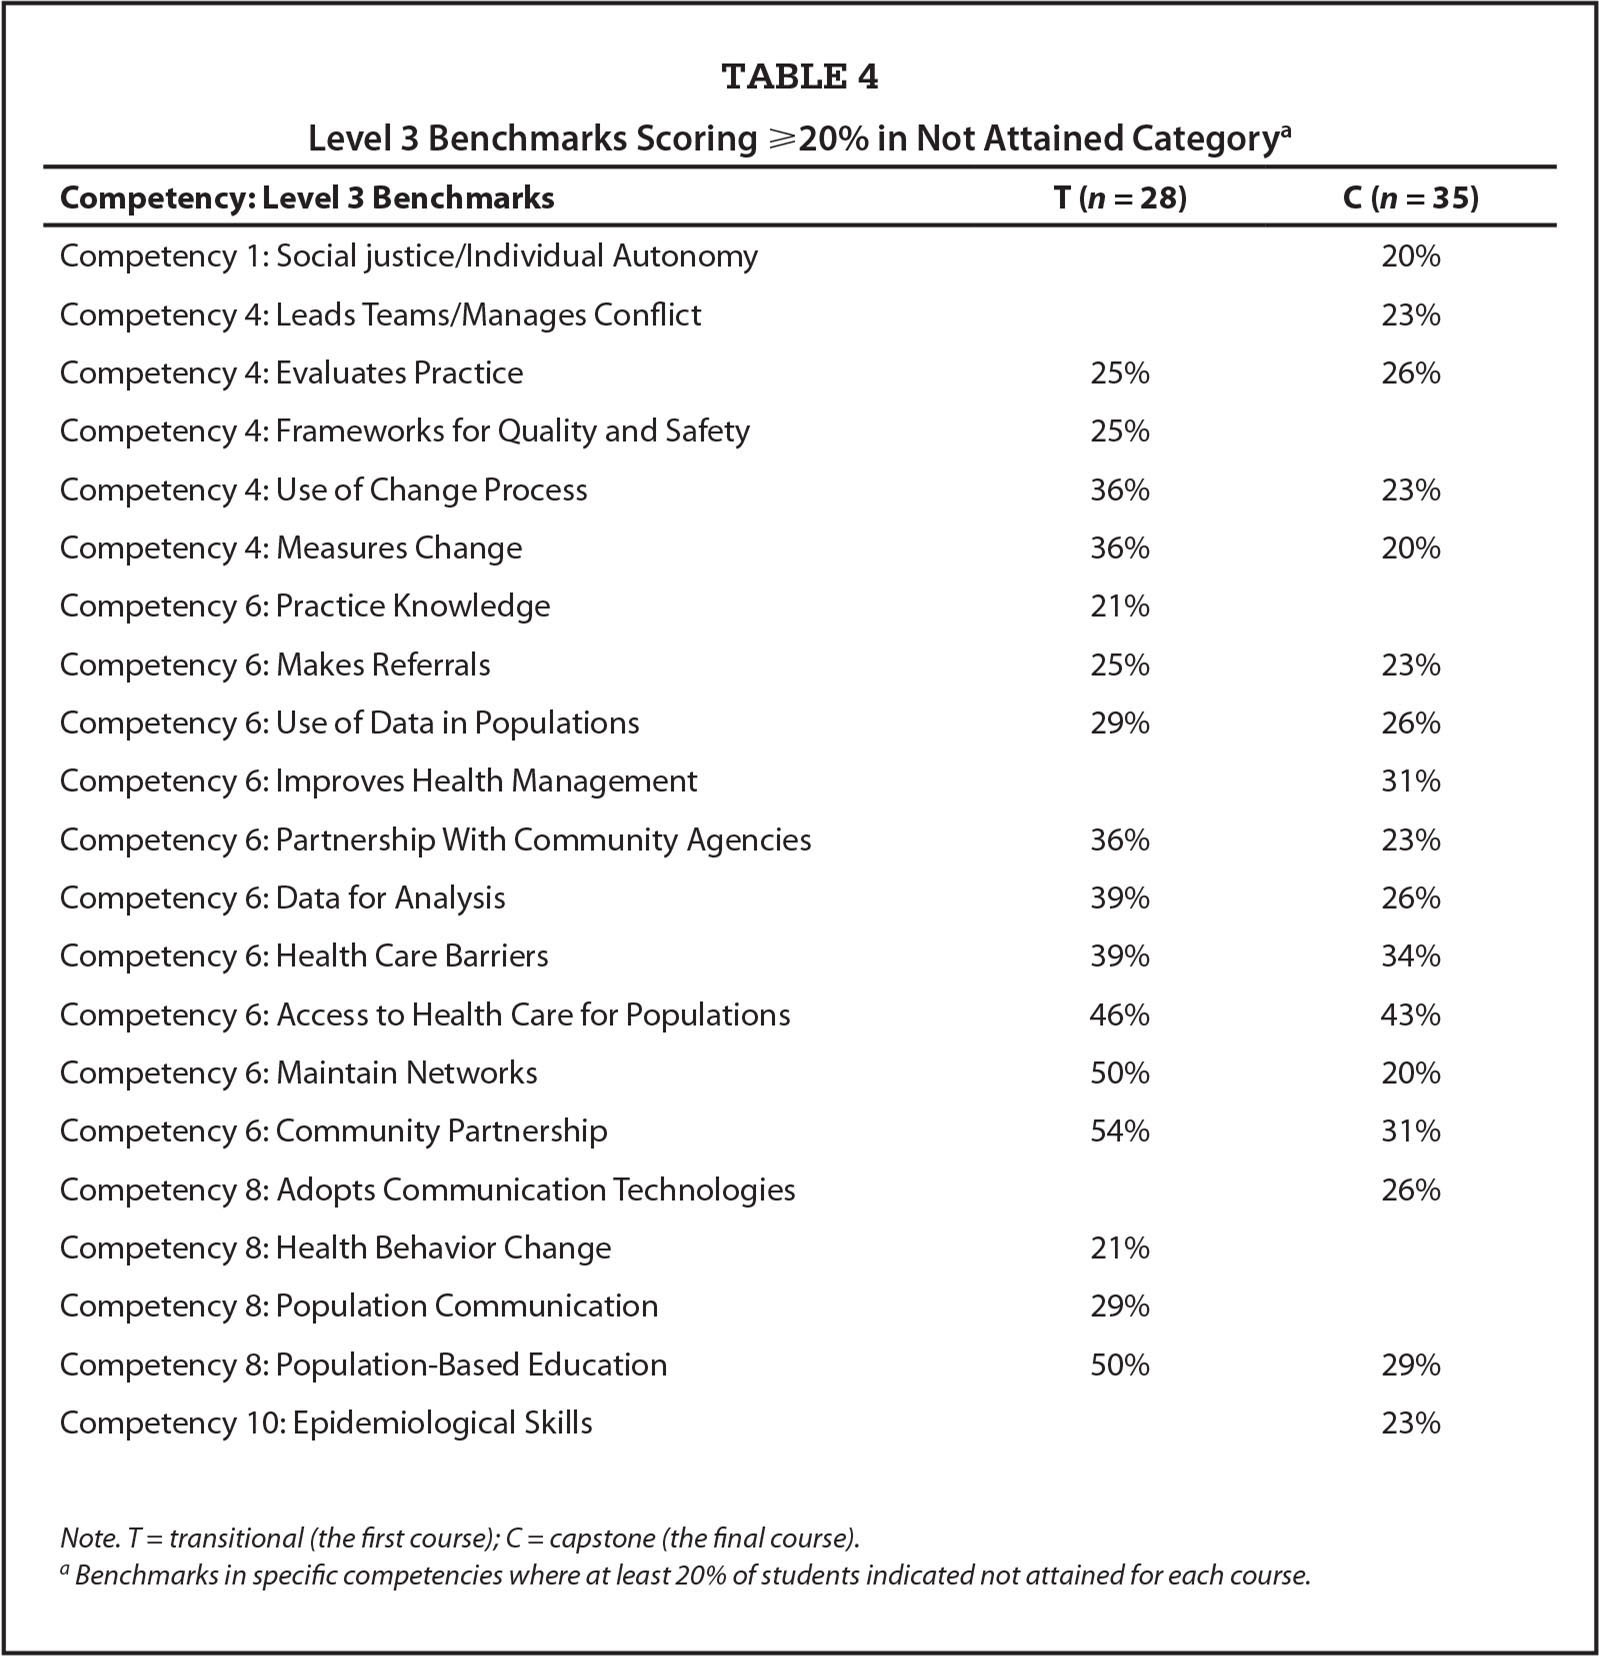 Level 3 Benchmarks Scoring ⩾20% in Not Attained Categorya